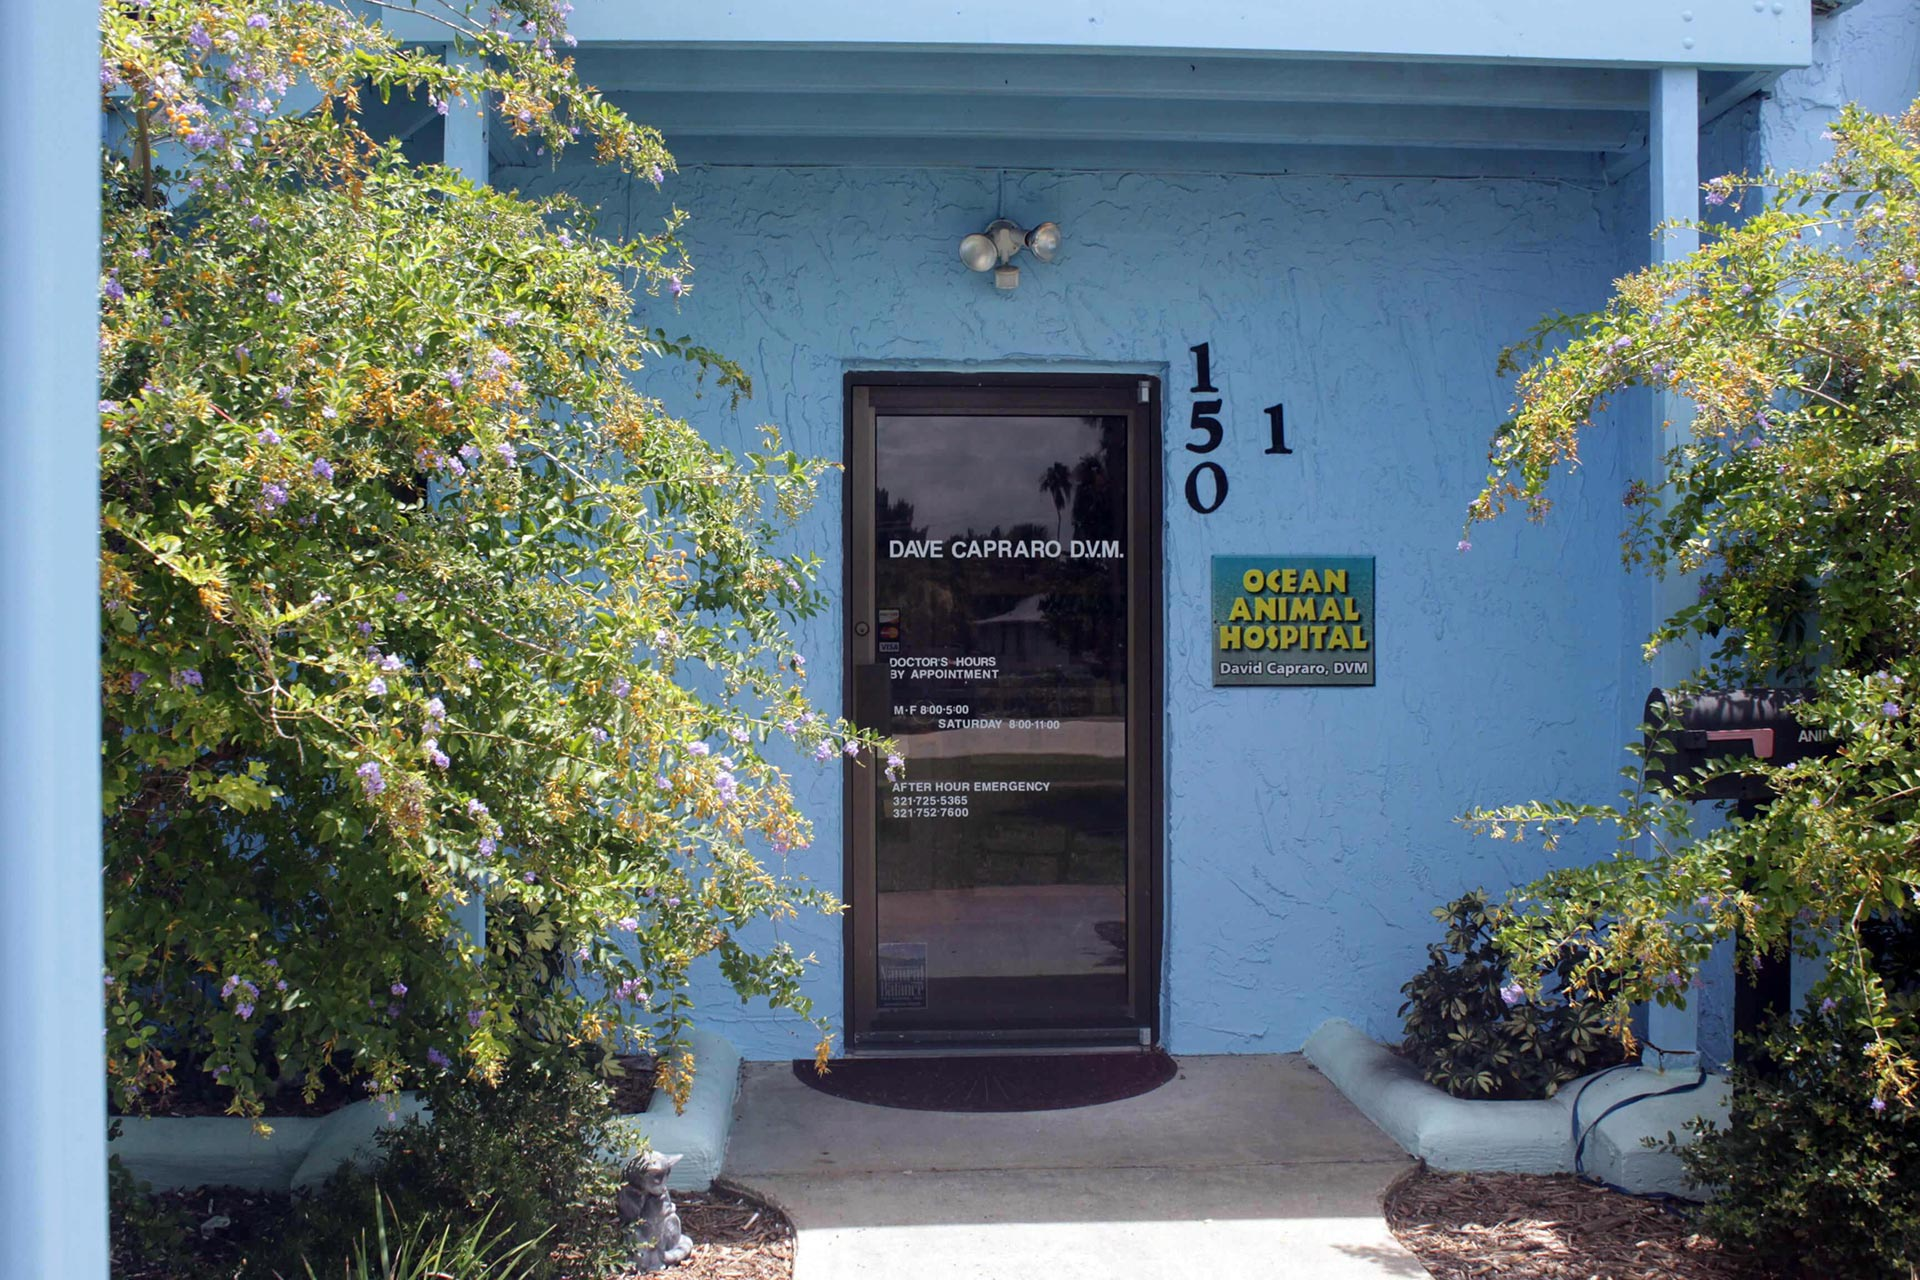 Ocean Animal Hospital Office